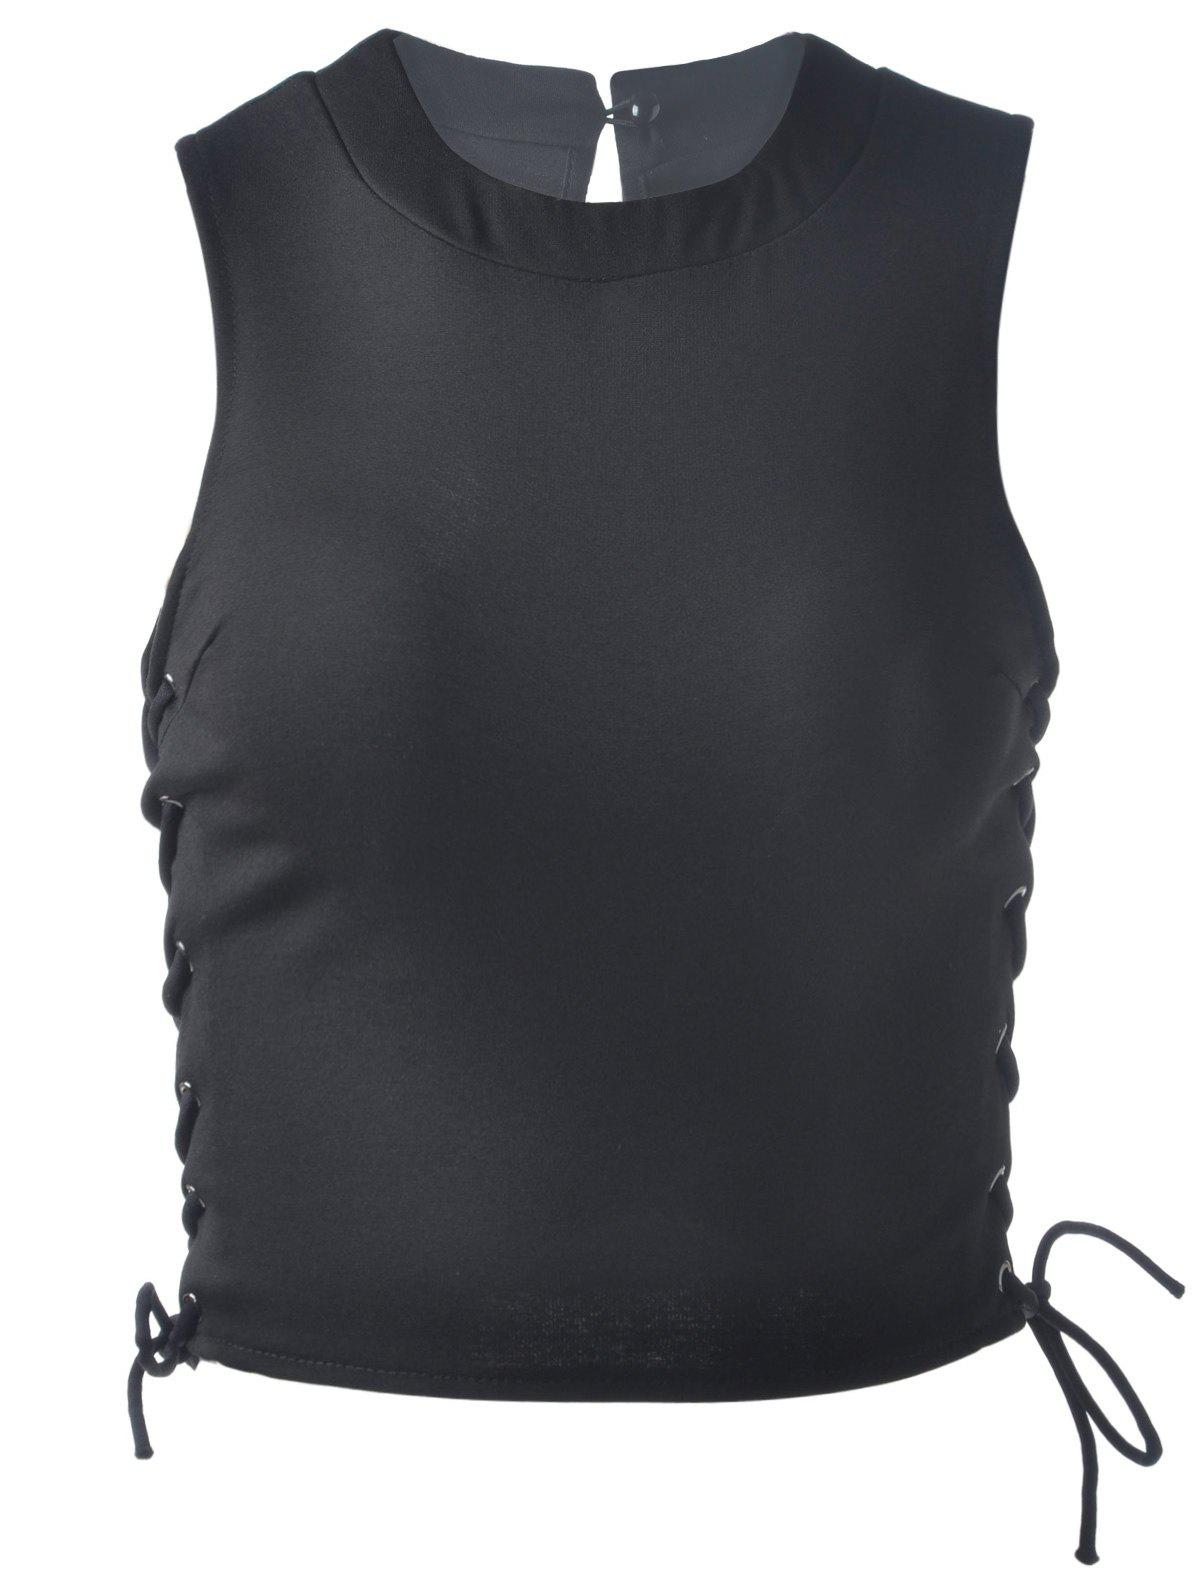 Fashionable Women's Jewel Neck  Sleeveless Crop Top - BLACK ONE SIZE(FIT SIZE XS TO M)